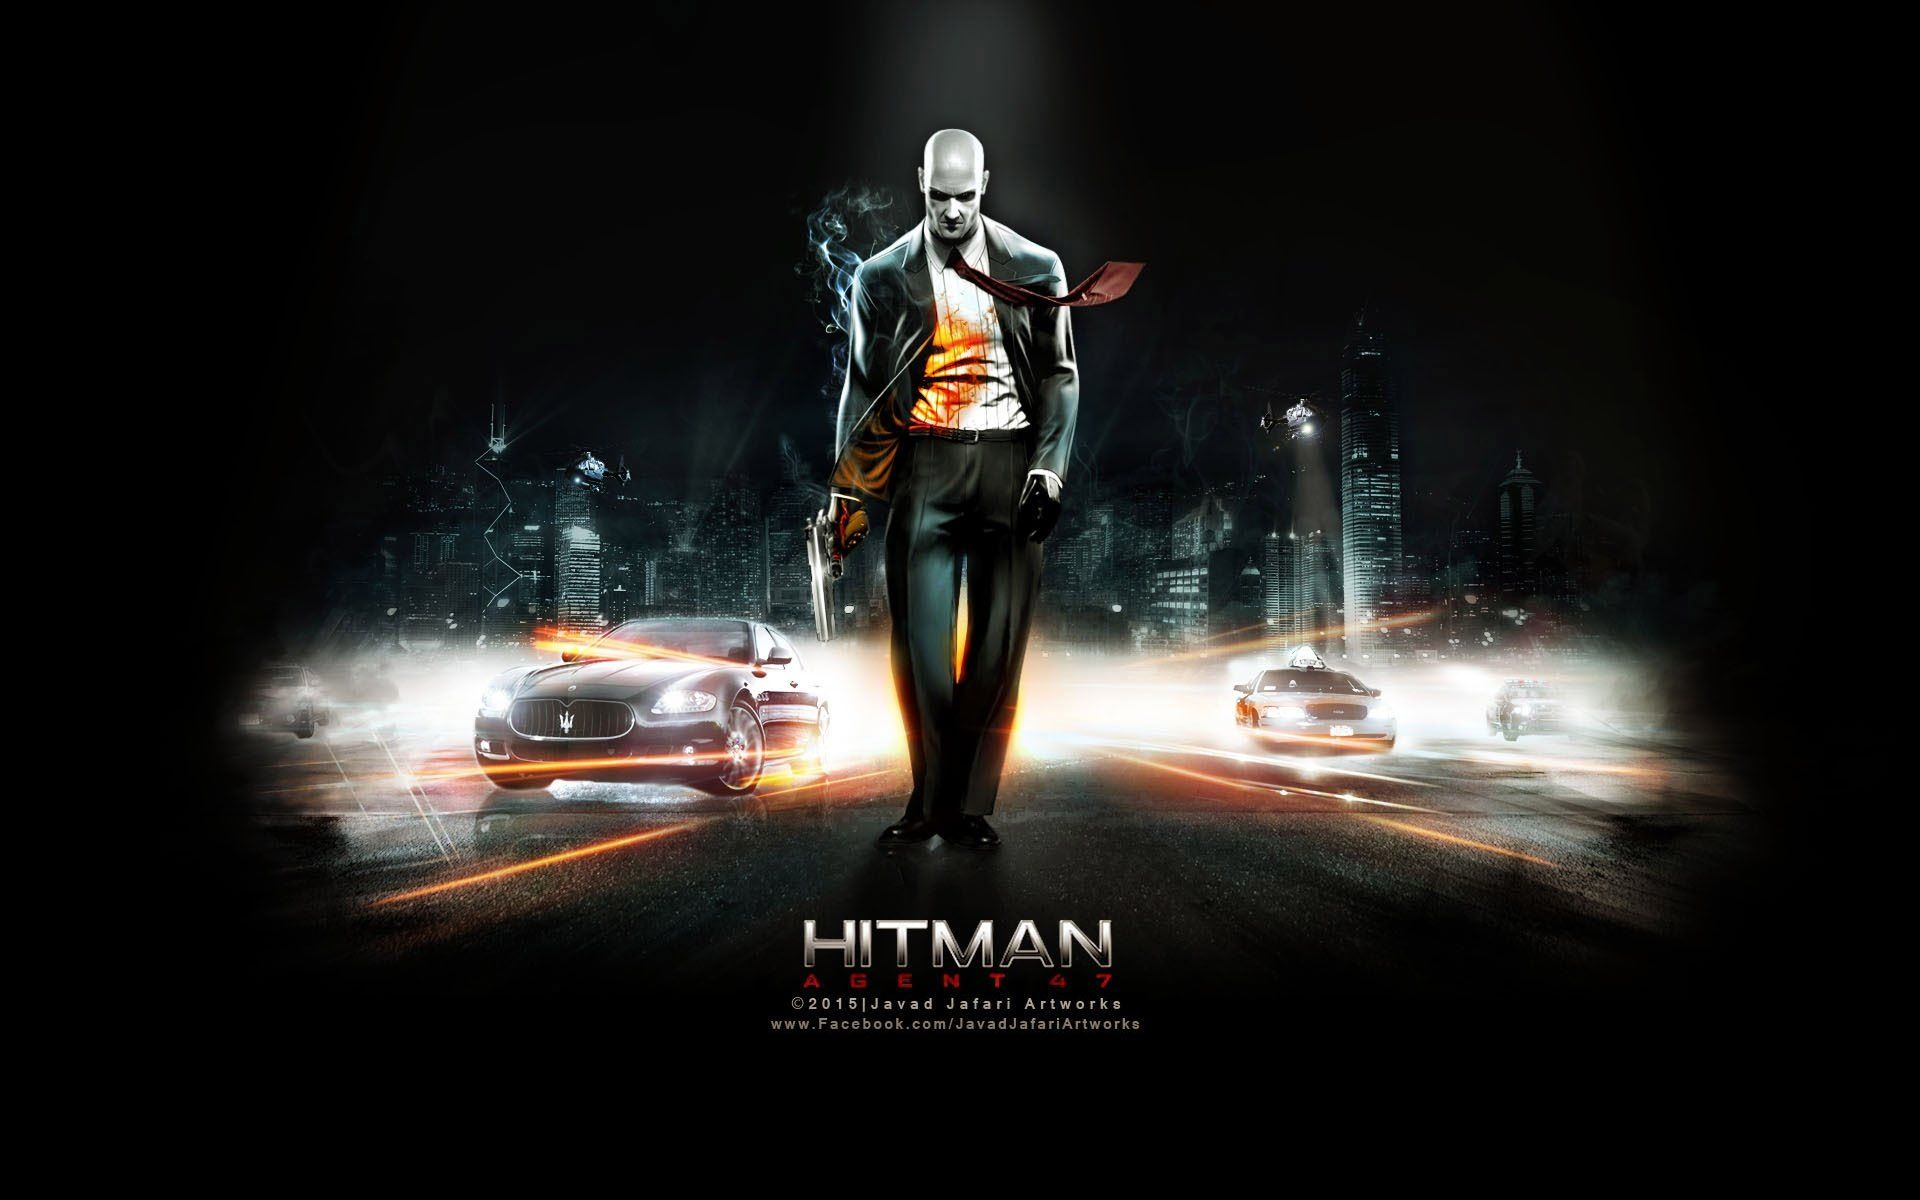 Hitman Movie Wallpaper Hd Resolution Jz3 Movie Wallpapers Hitman Movie Hitman Agent 47